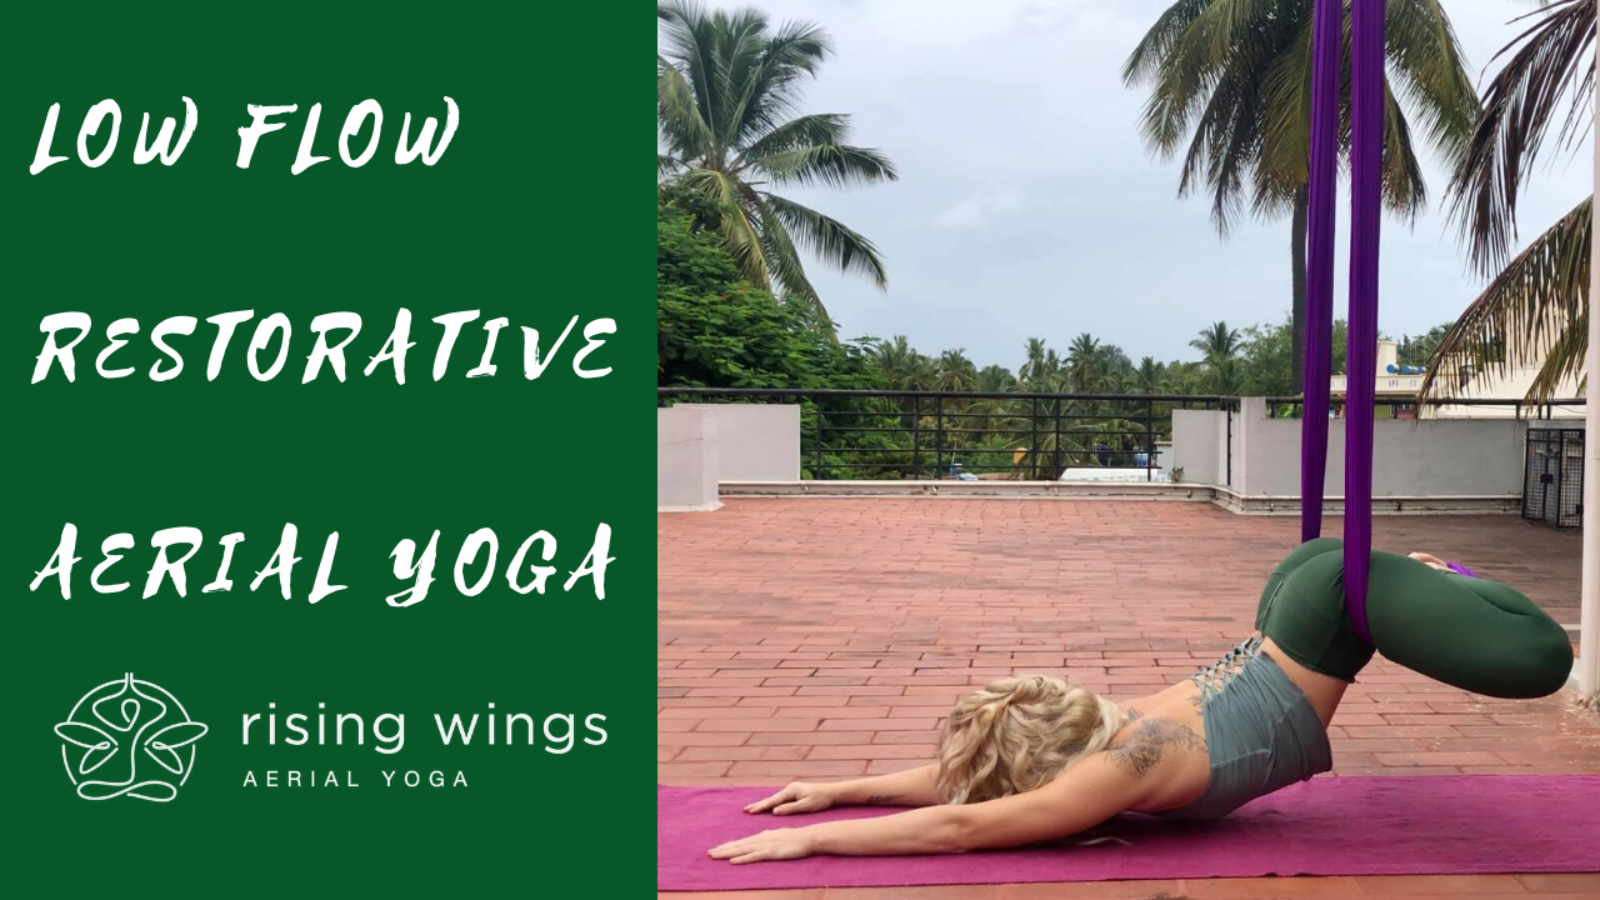 1-Hour Restorative Low Flow Aerial Yoga Yin w/ Lindsay Nova Rising Wings Aerial Yoga #aerialyoga